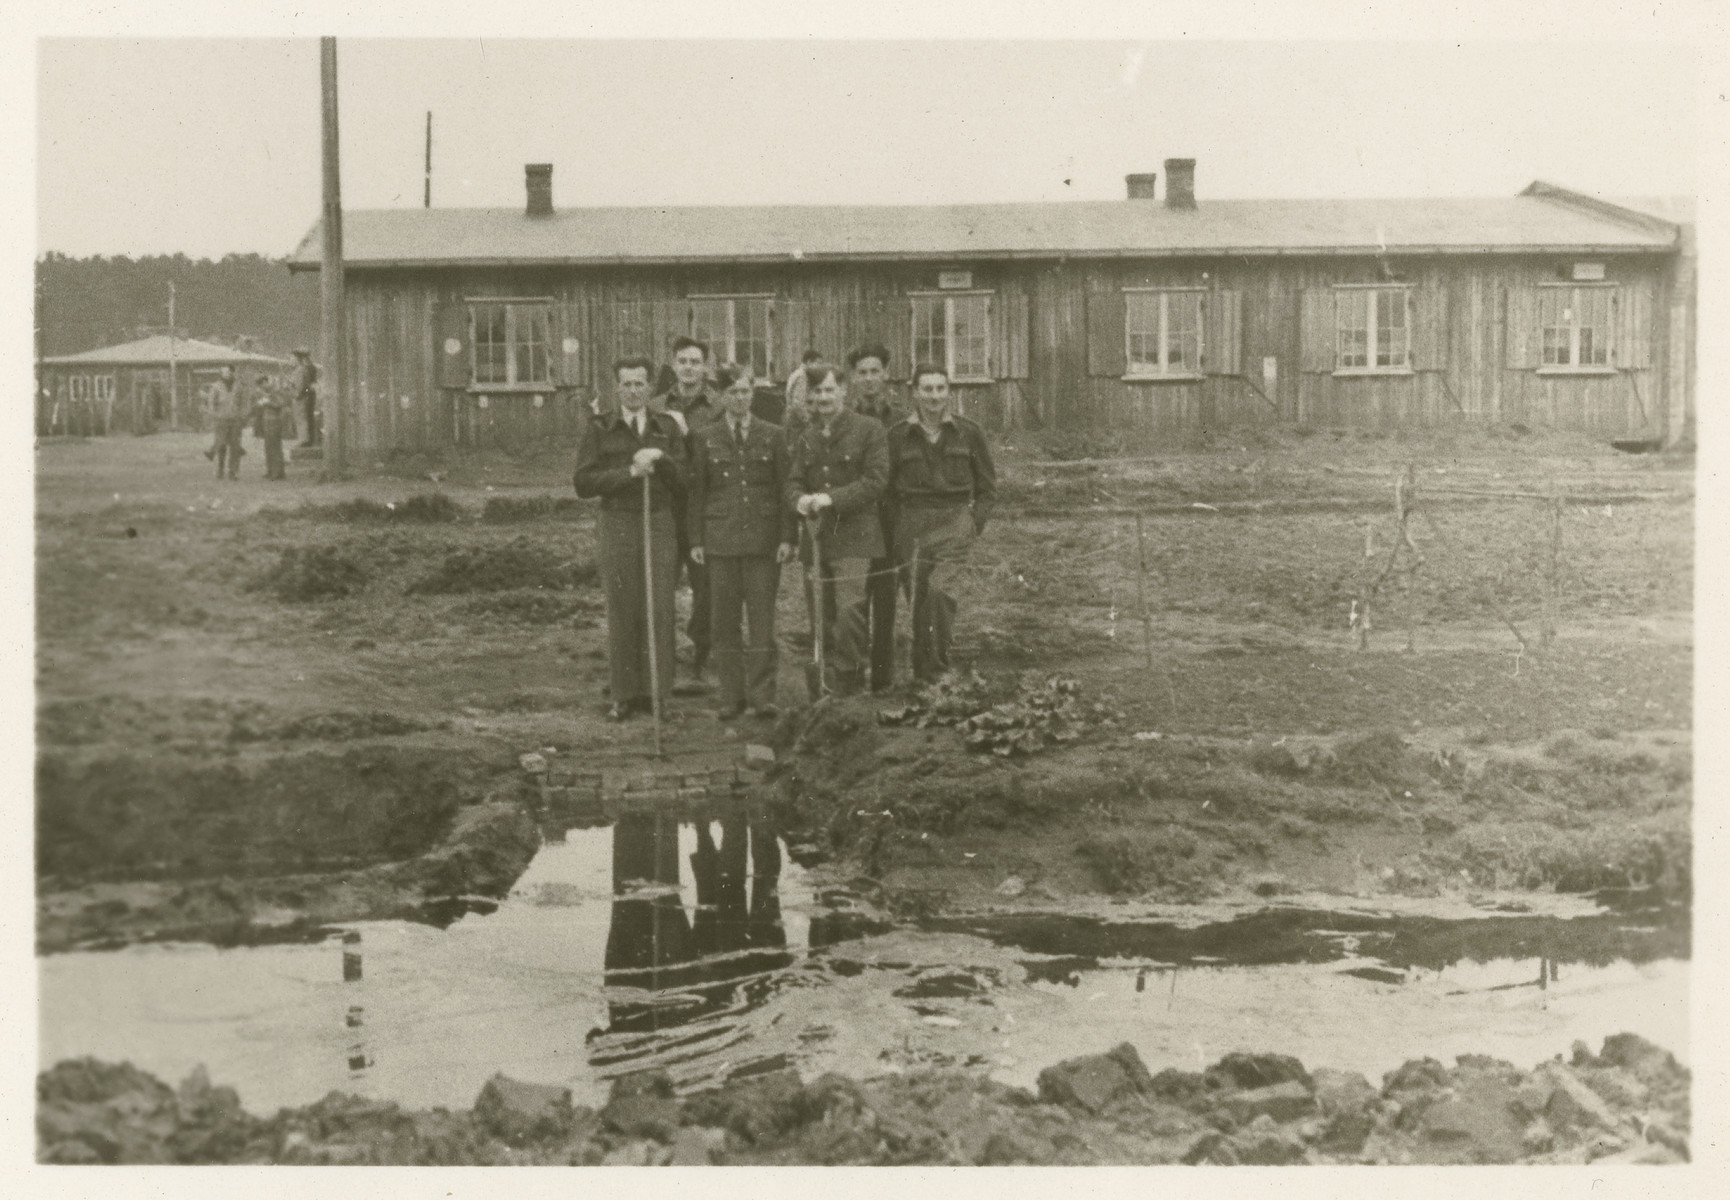 American POWs  stand outside a barrack in Stalag Luft 1.